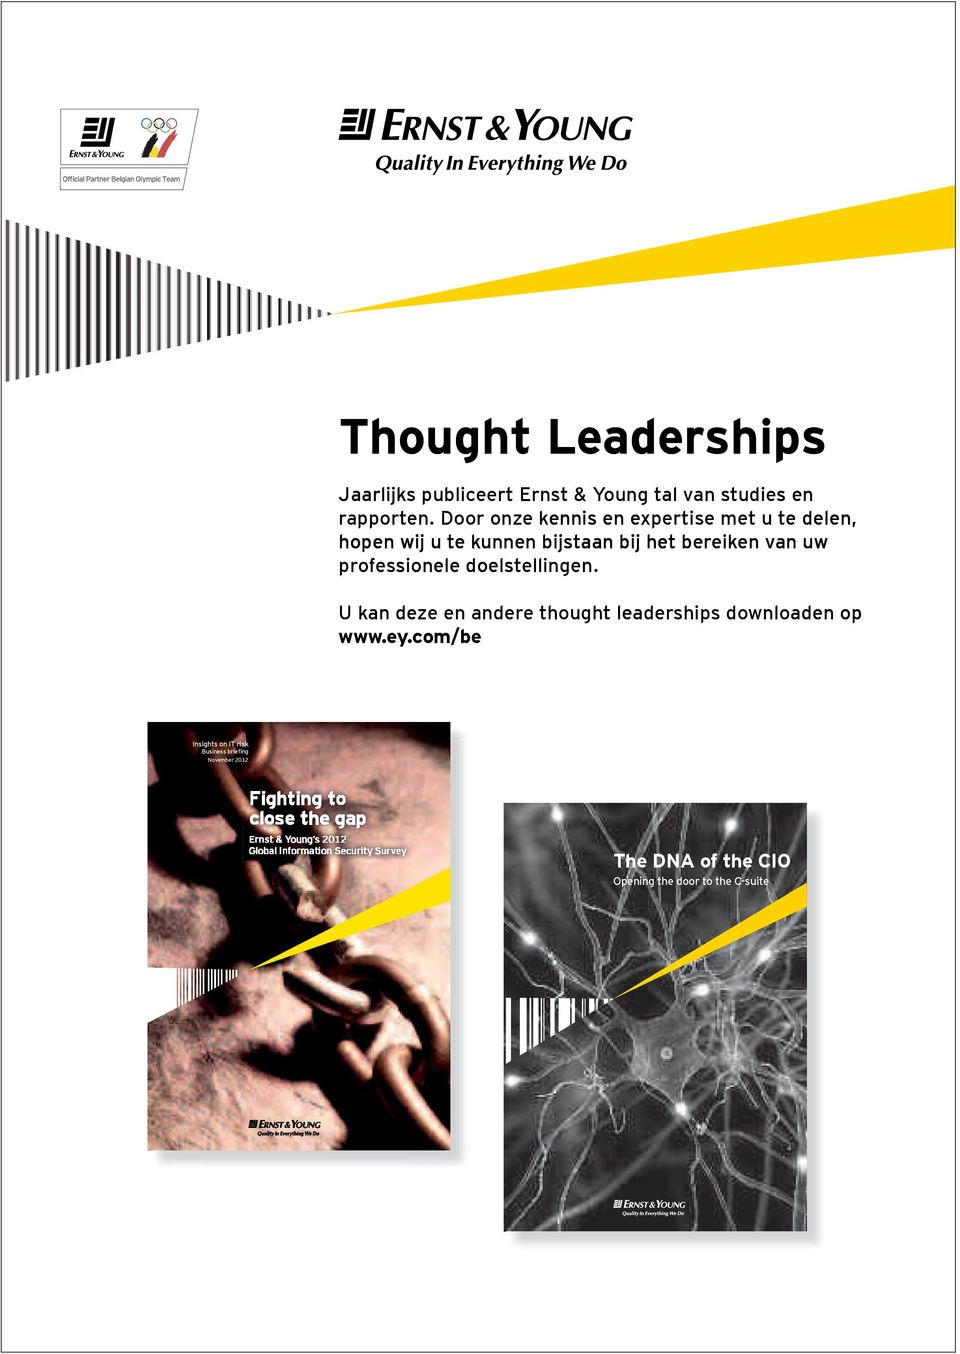 sionele doelstellingen. U kan deze en andere thought t leaderships downloaden op www.ey.